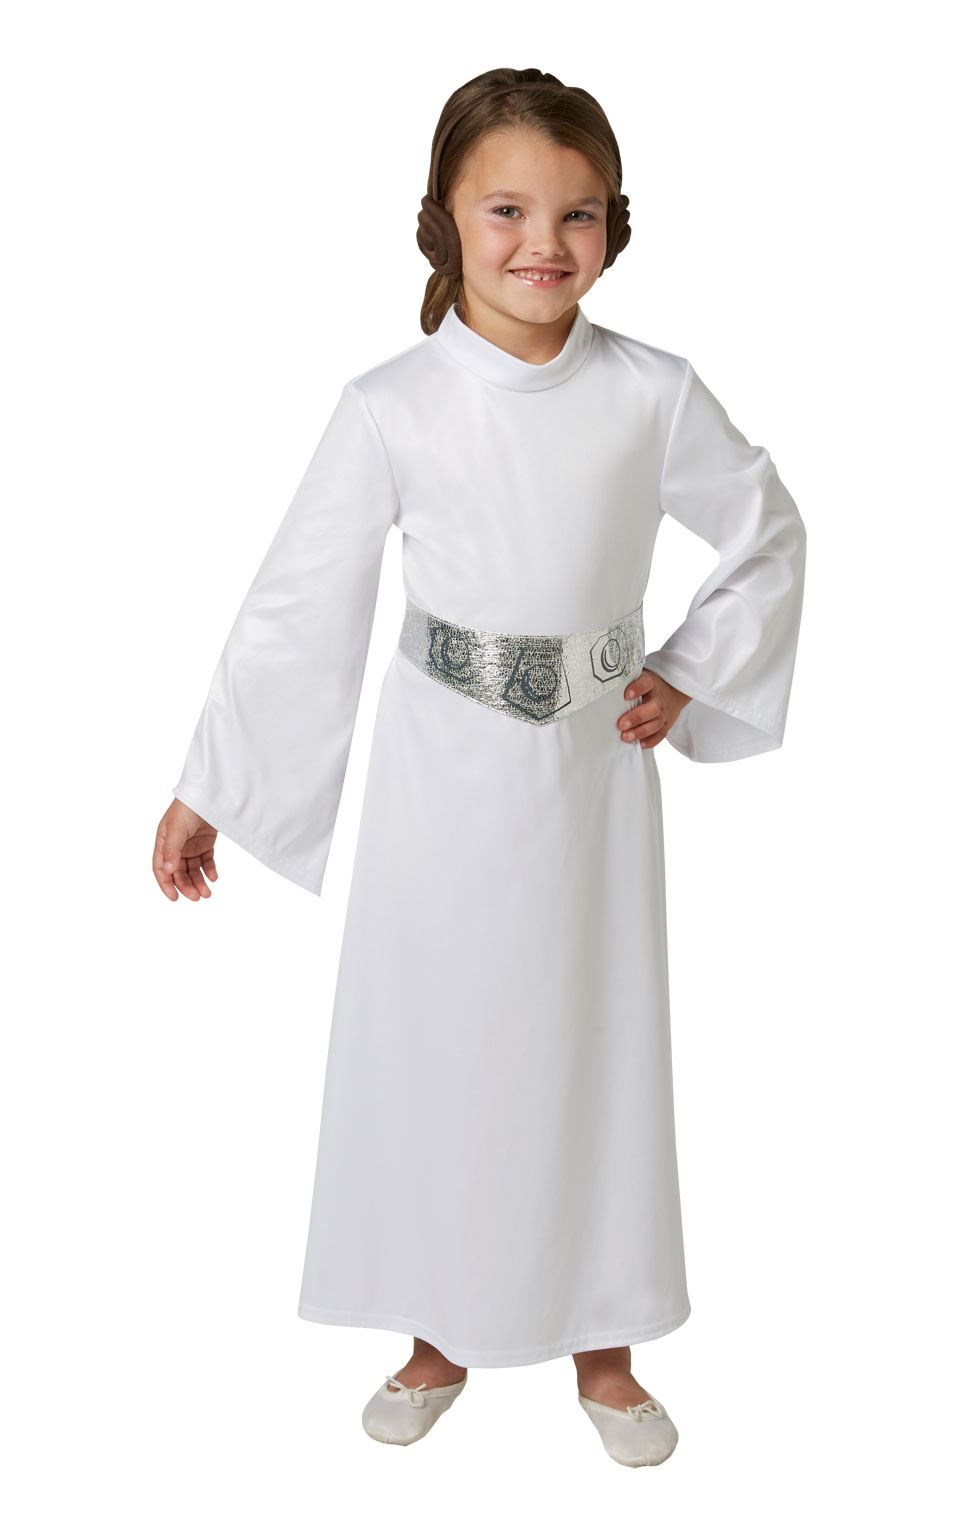 girls princess leia costume star wars fancy dress party child outfit. Black Bedroom Furniture Sets. Home Design Ideas